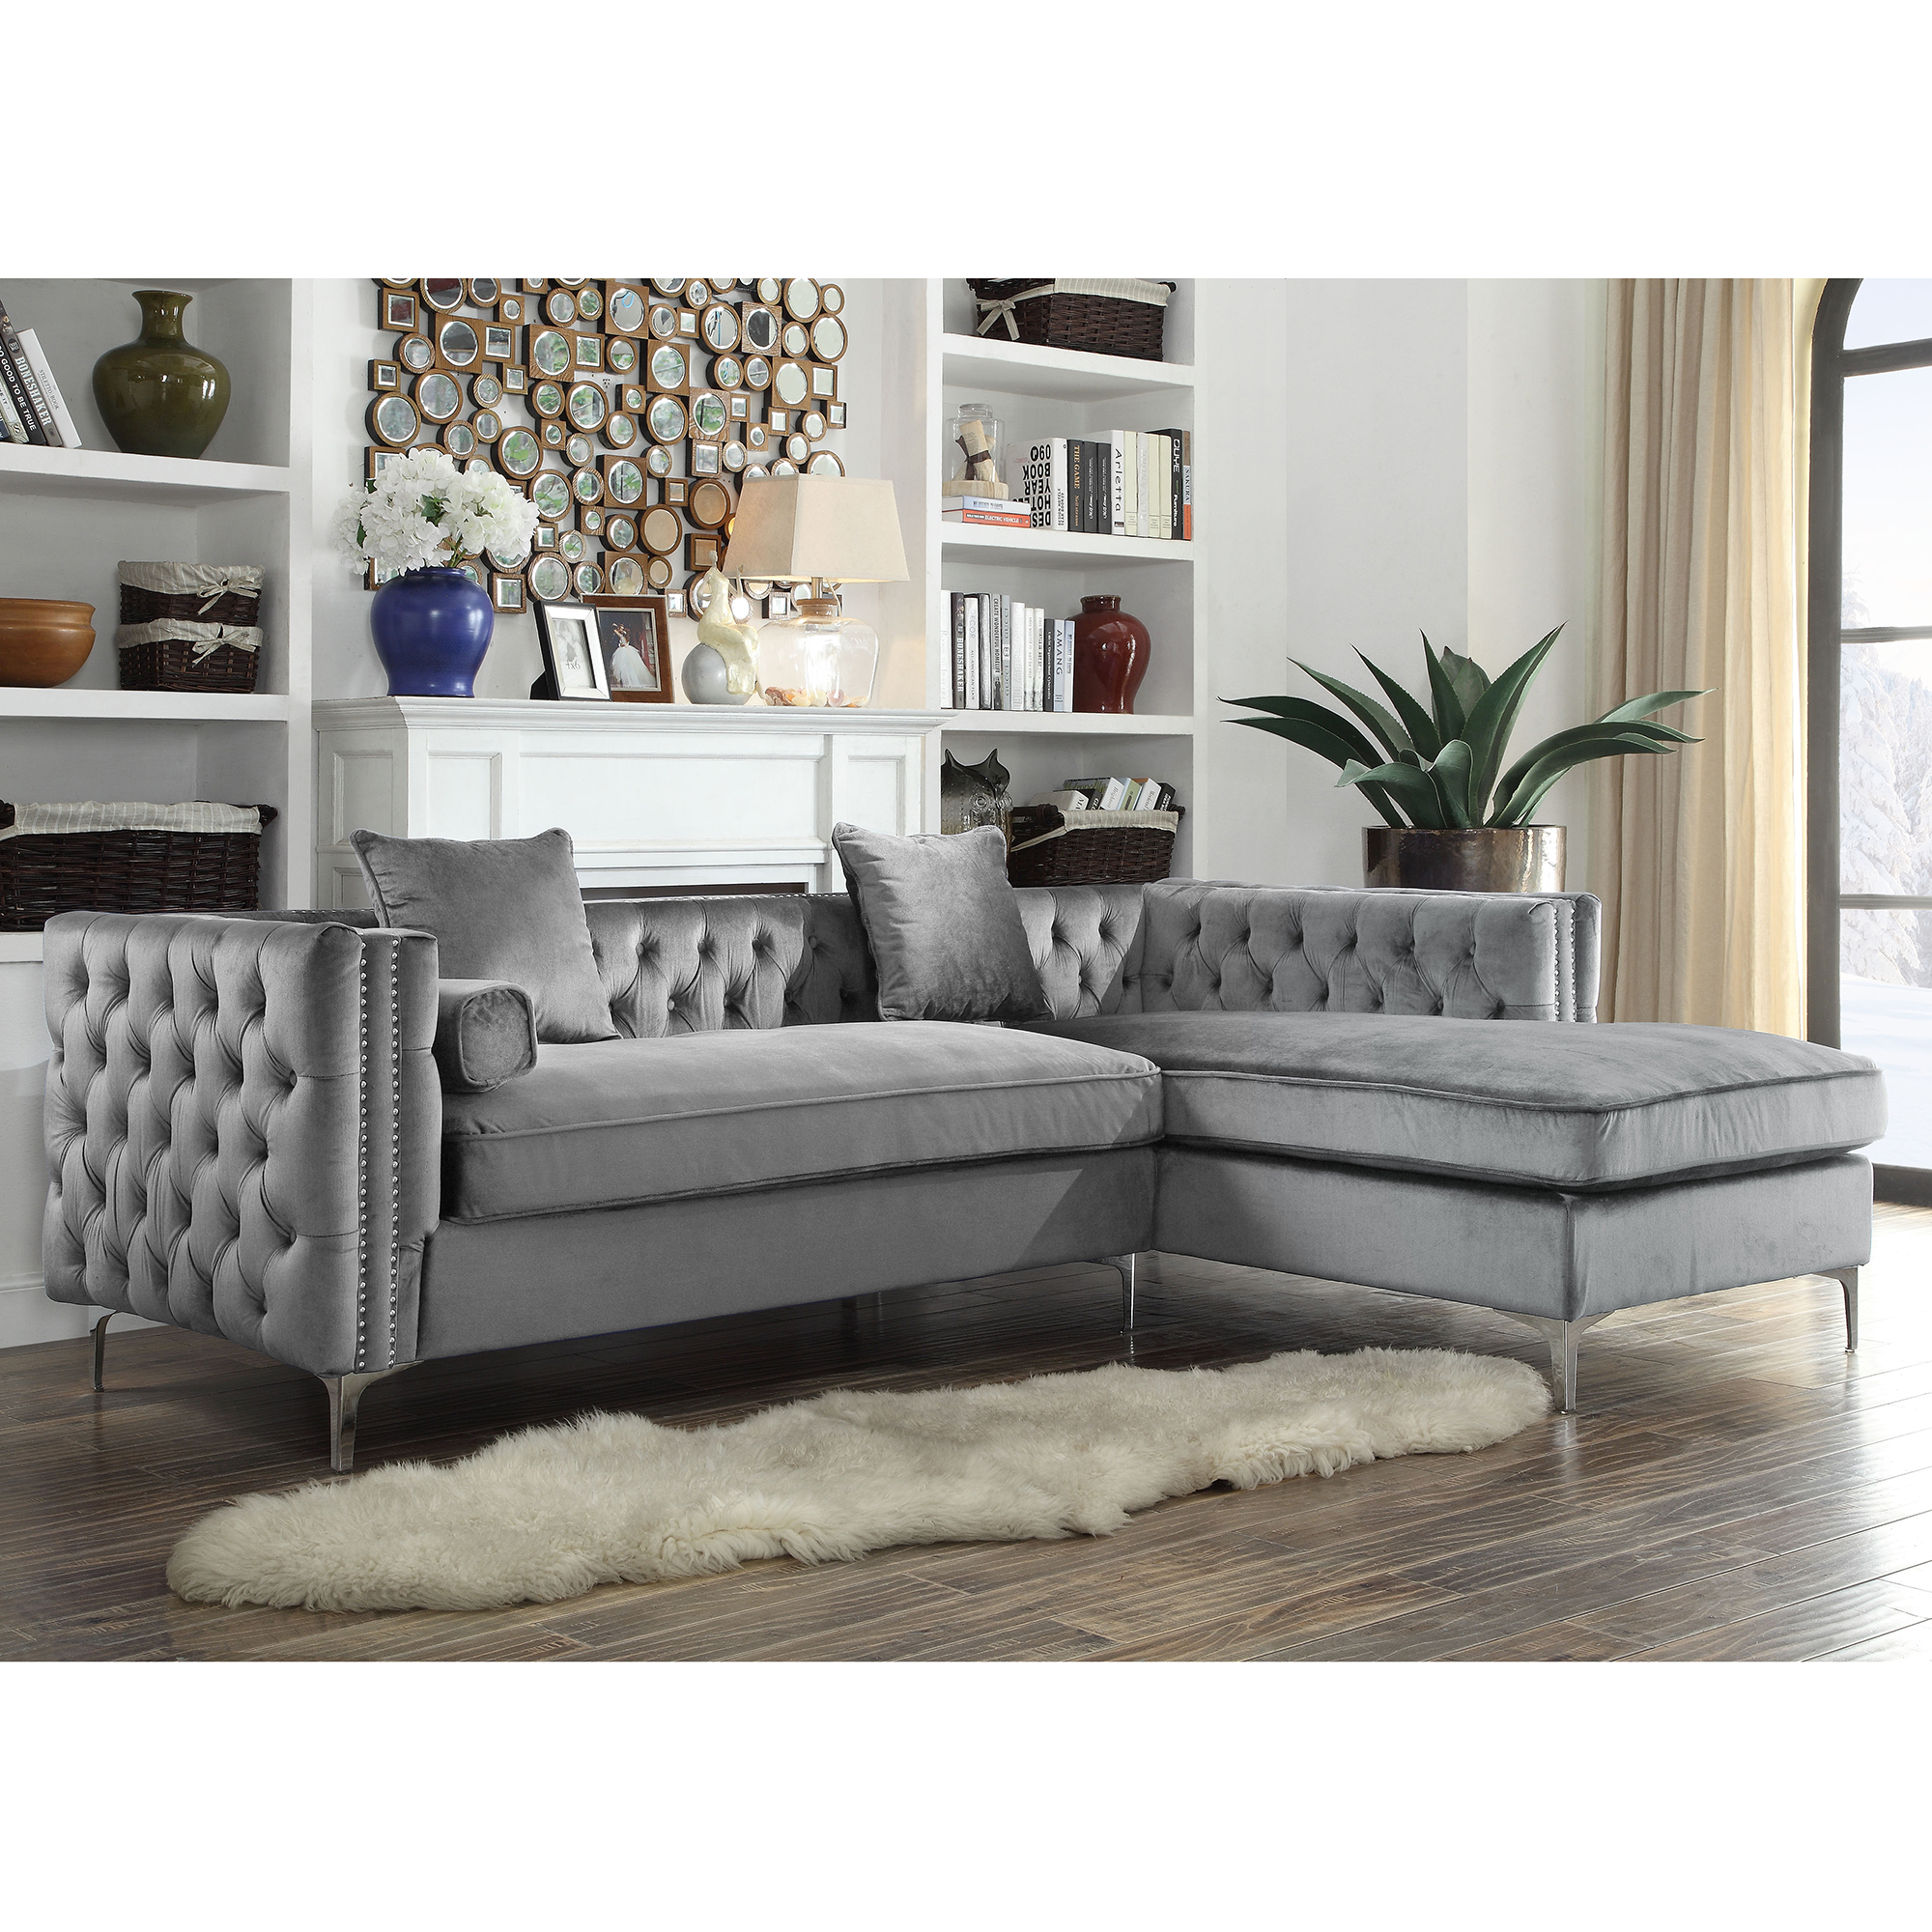 Chic Home FSA2581 Da Vinci Sectional Sofa w Right Hand Chaise in